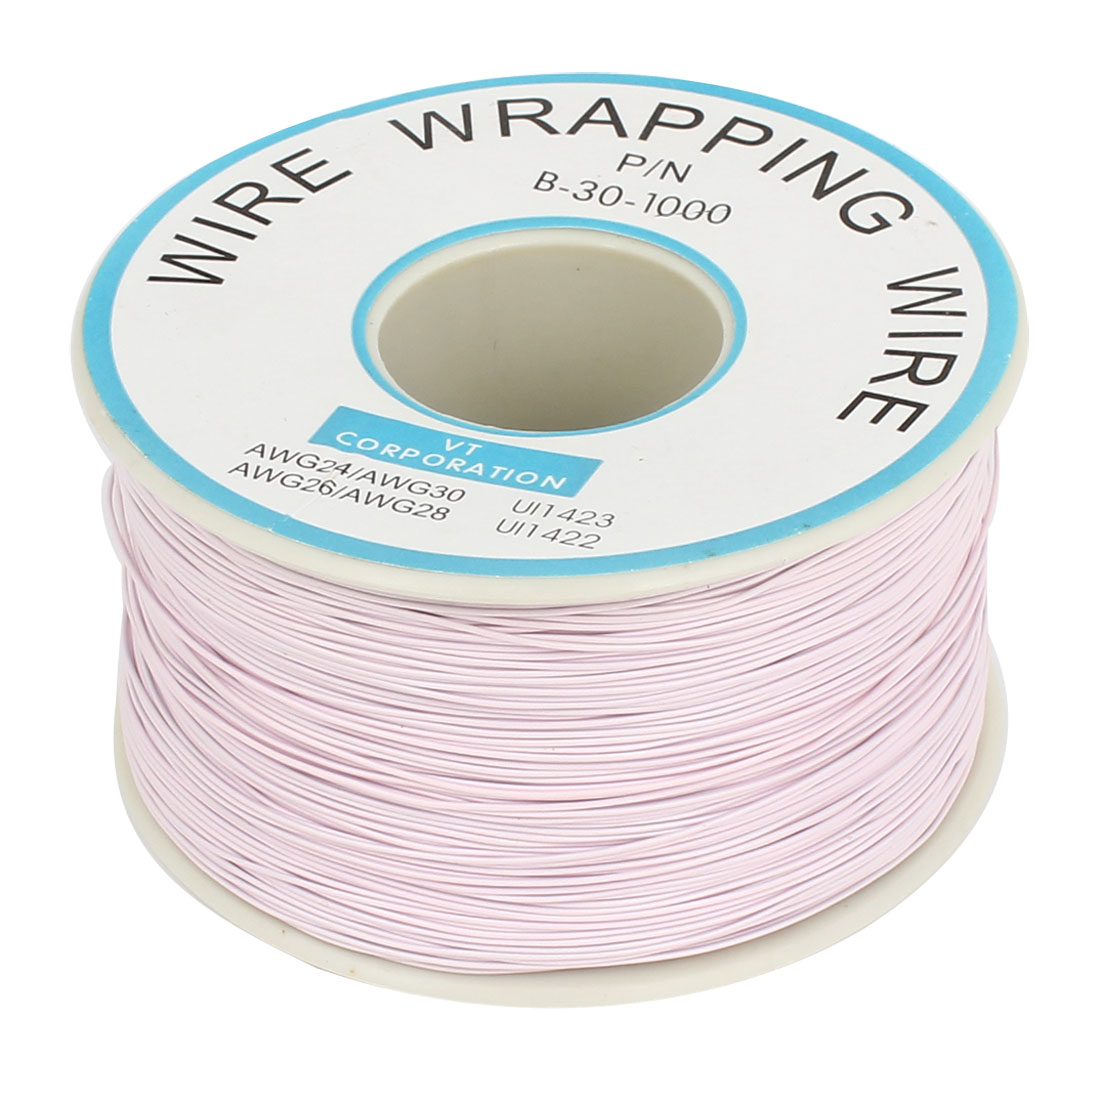 P/N B-30-1000 Tin Plated Copper Wire Wrapping 30AWG Cable 250M Light Purple